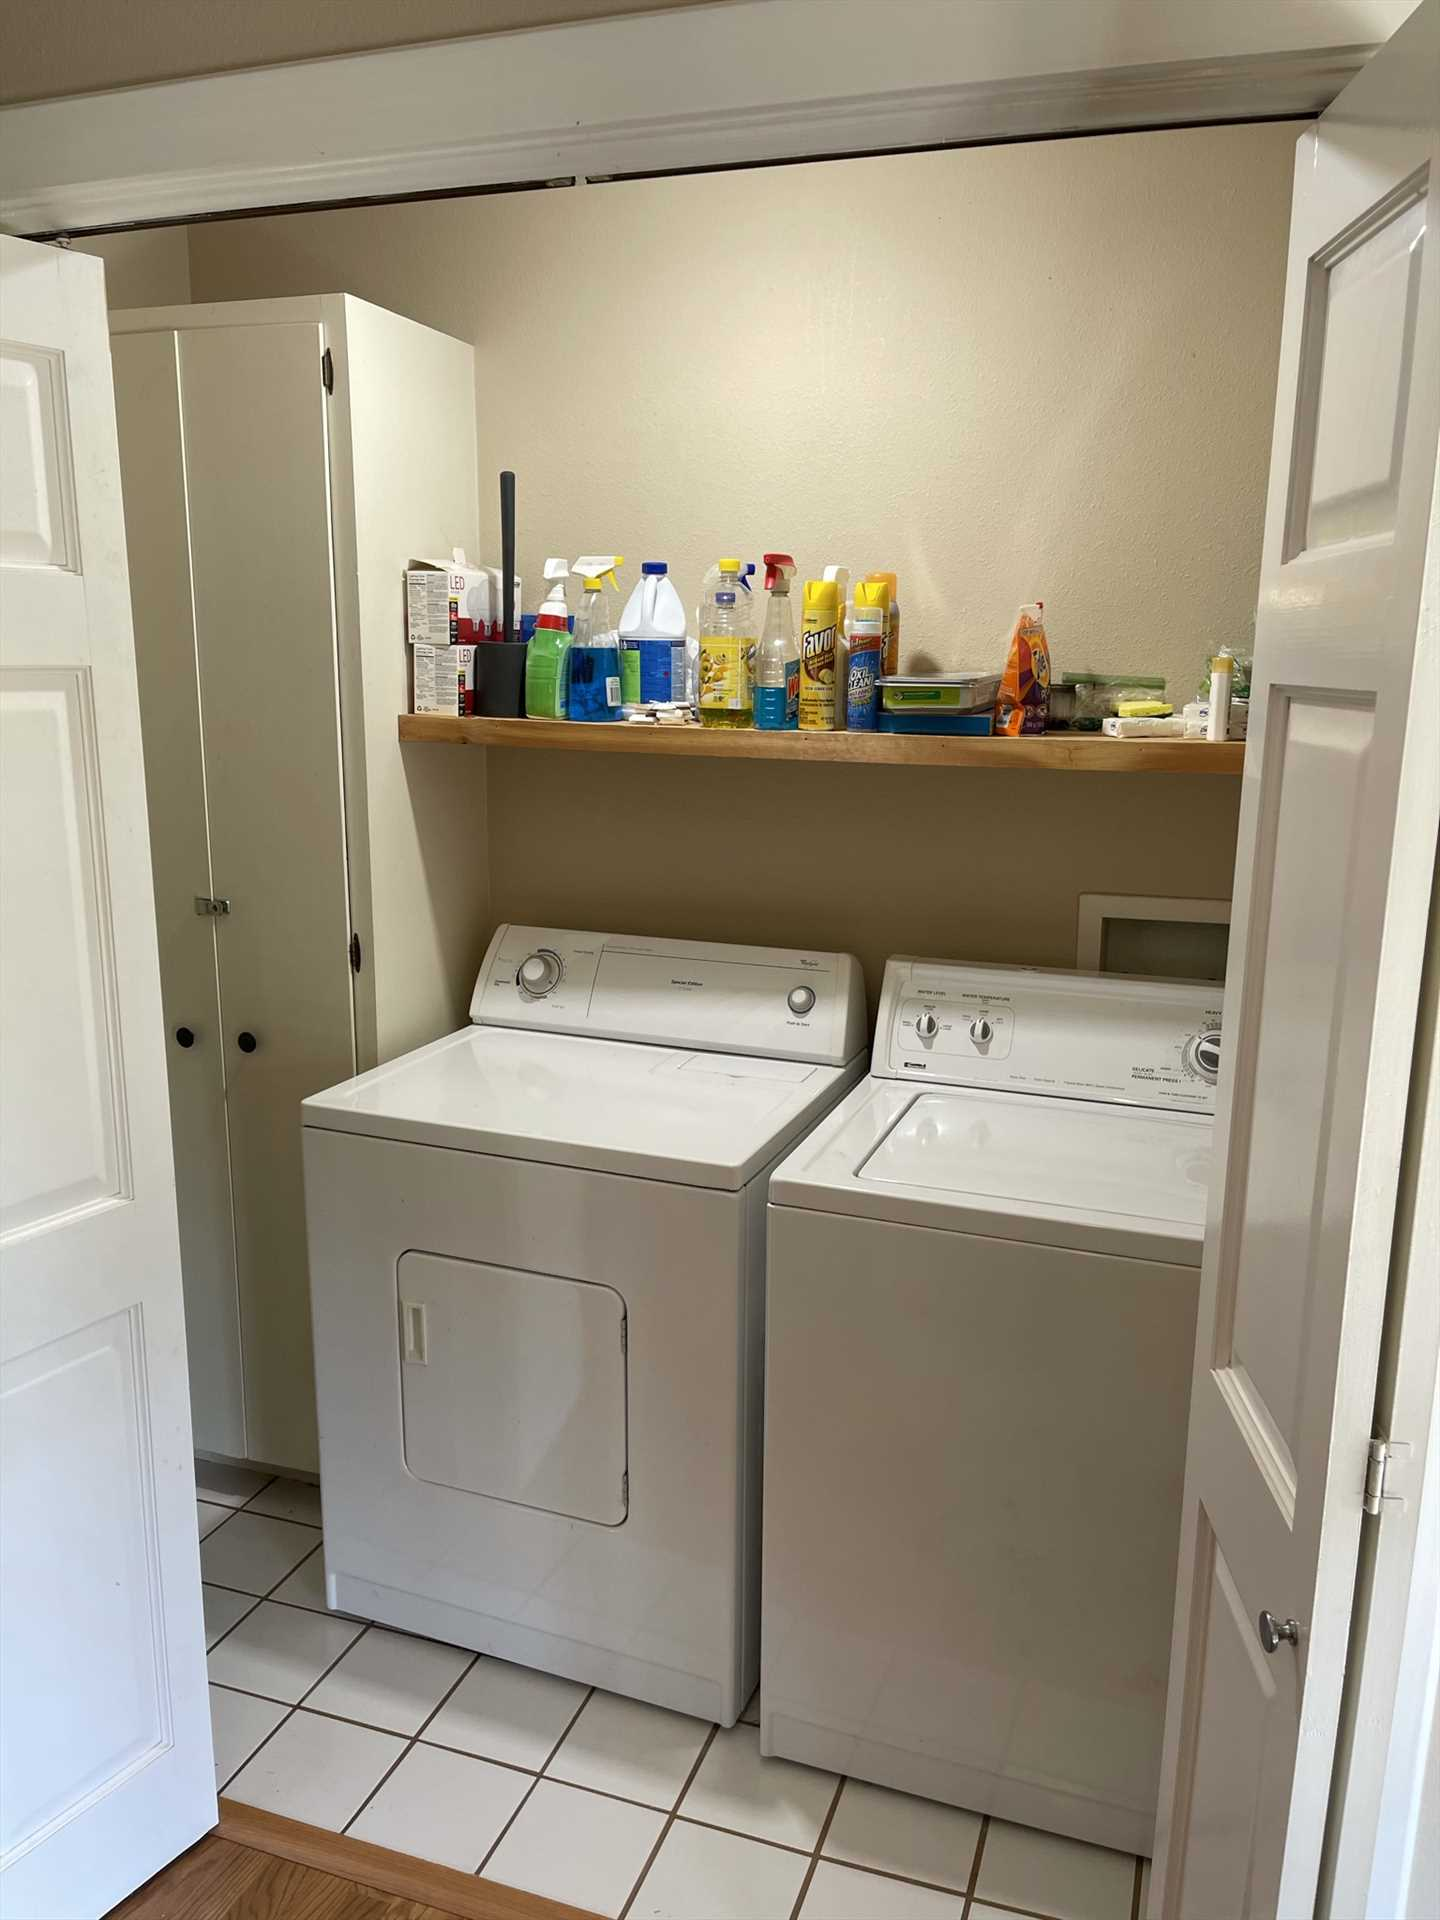 Keep up with your laundry in this handy utility room, it'll save you the headache of dealing with it after your stay!